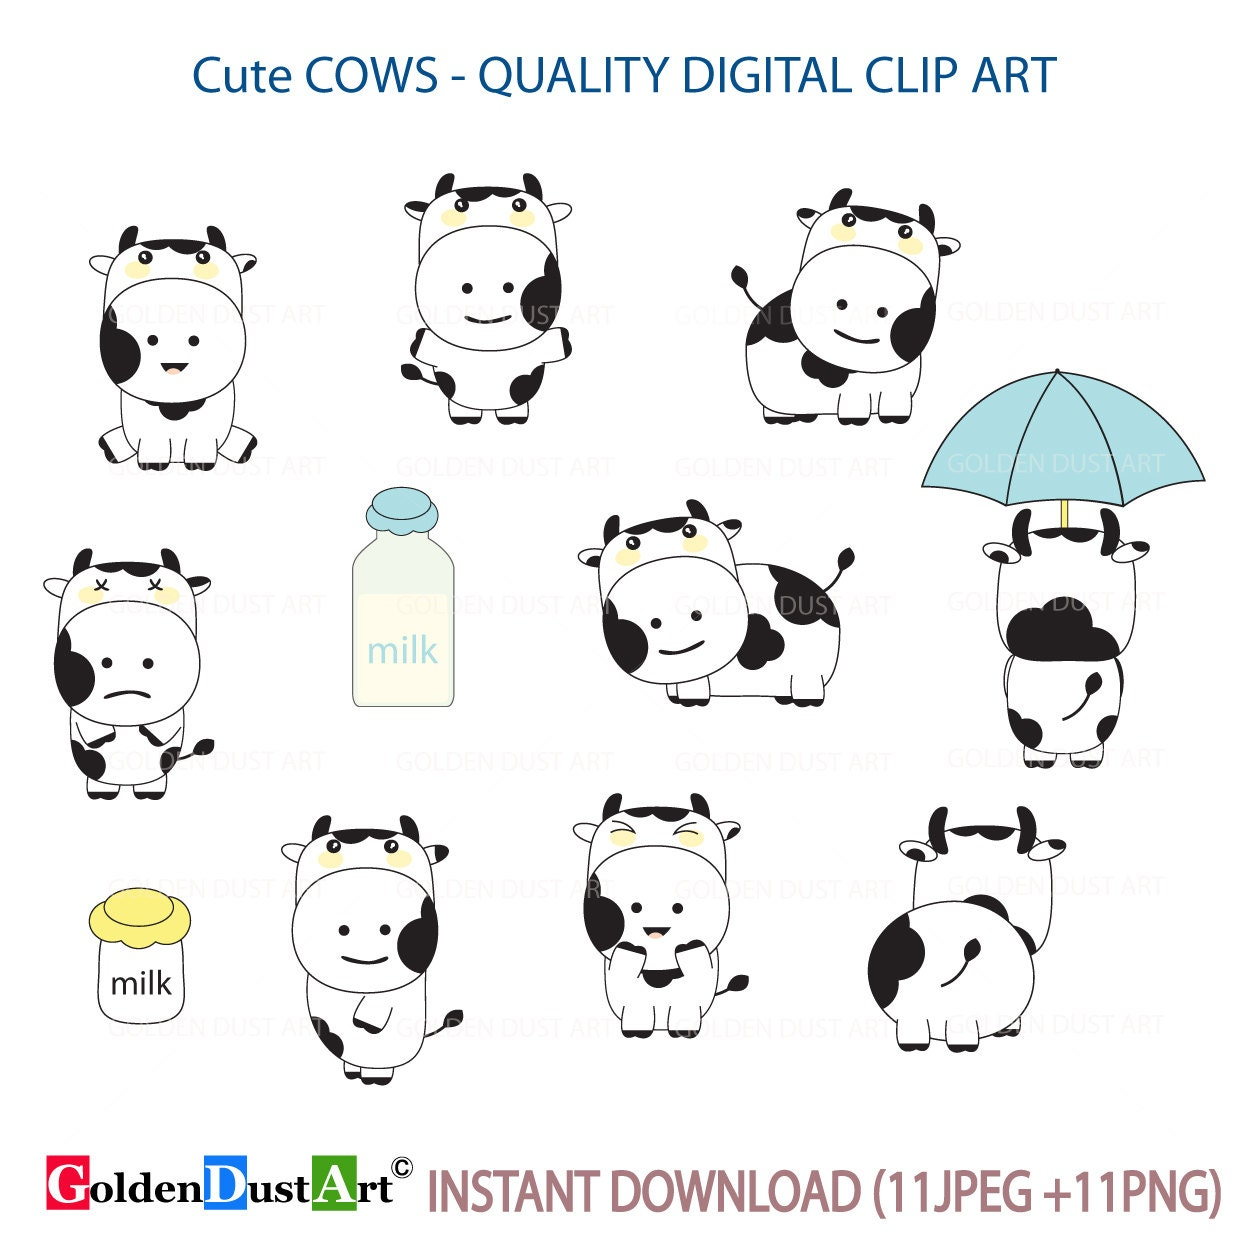 cow clipart cute cows kawaii cow kawaii animal kawaii etsy rh etsy com cute crow clip art cute cow clipart black and white